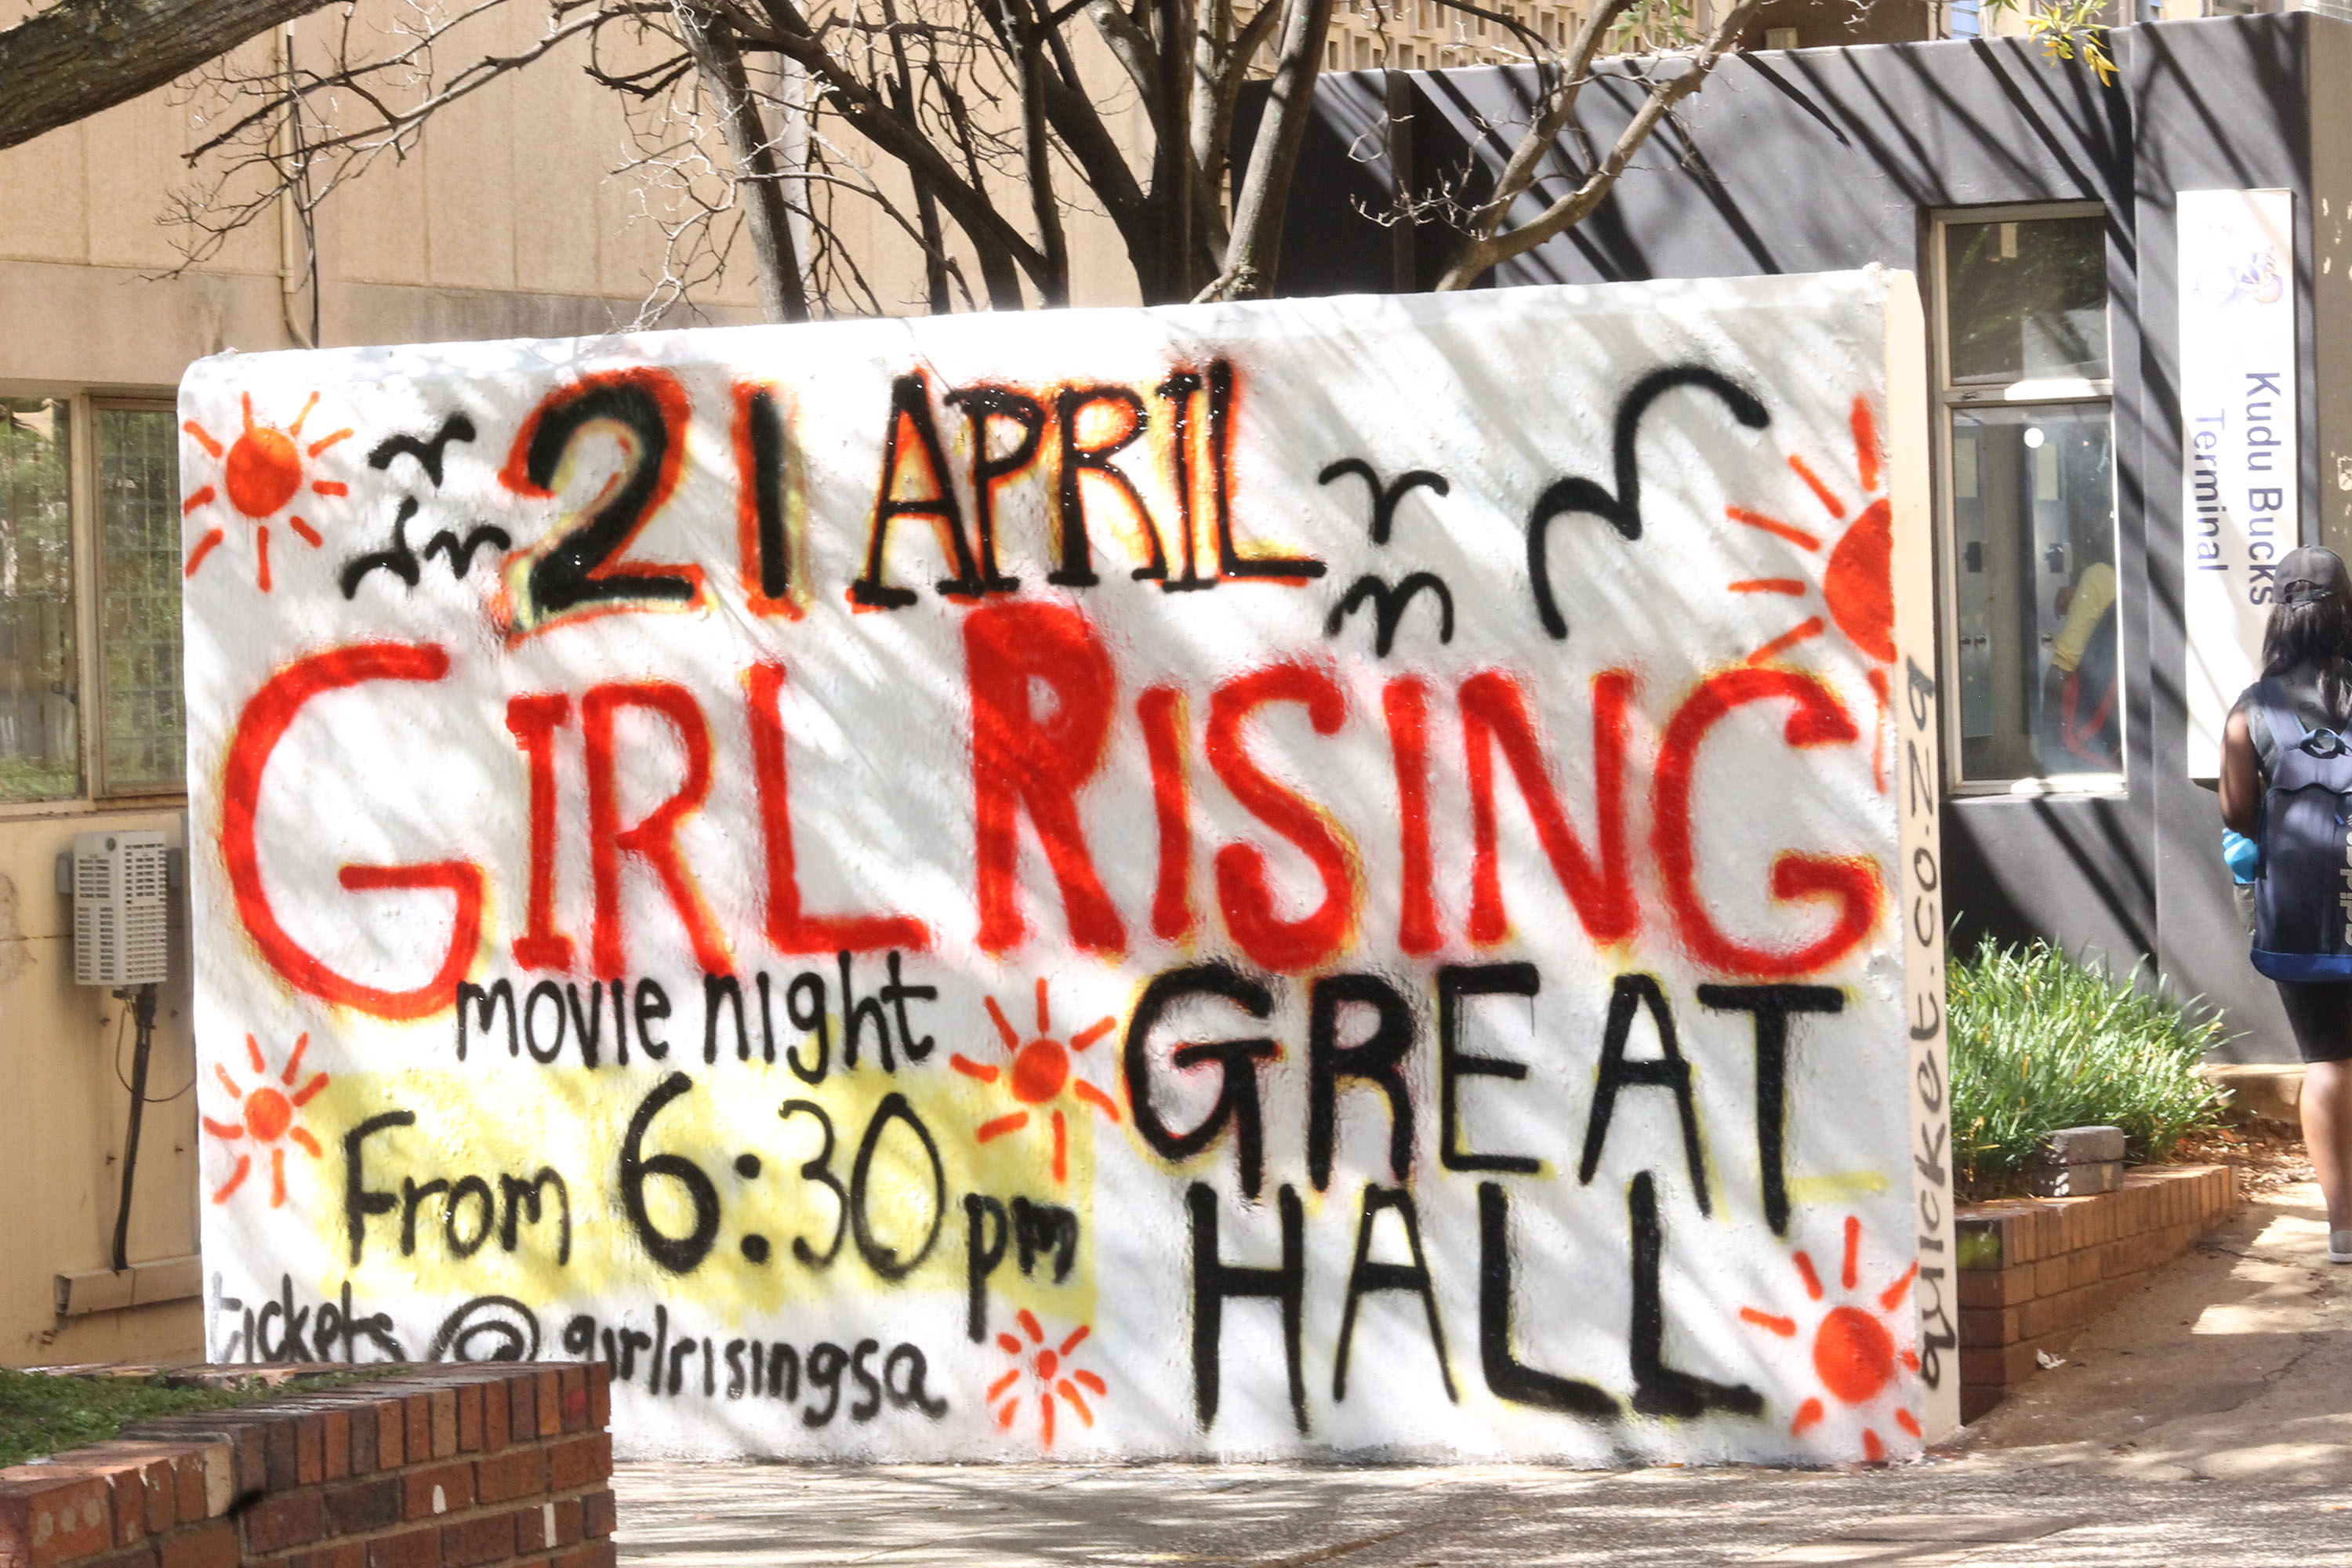 Movies to raise money for girls' education